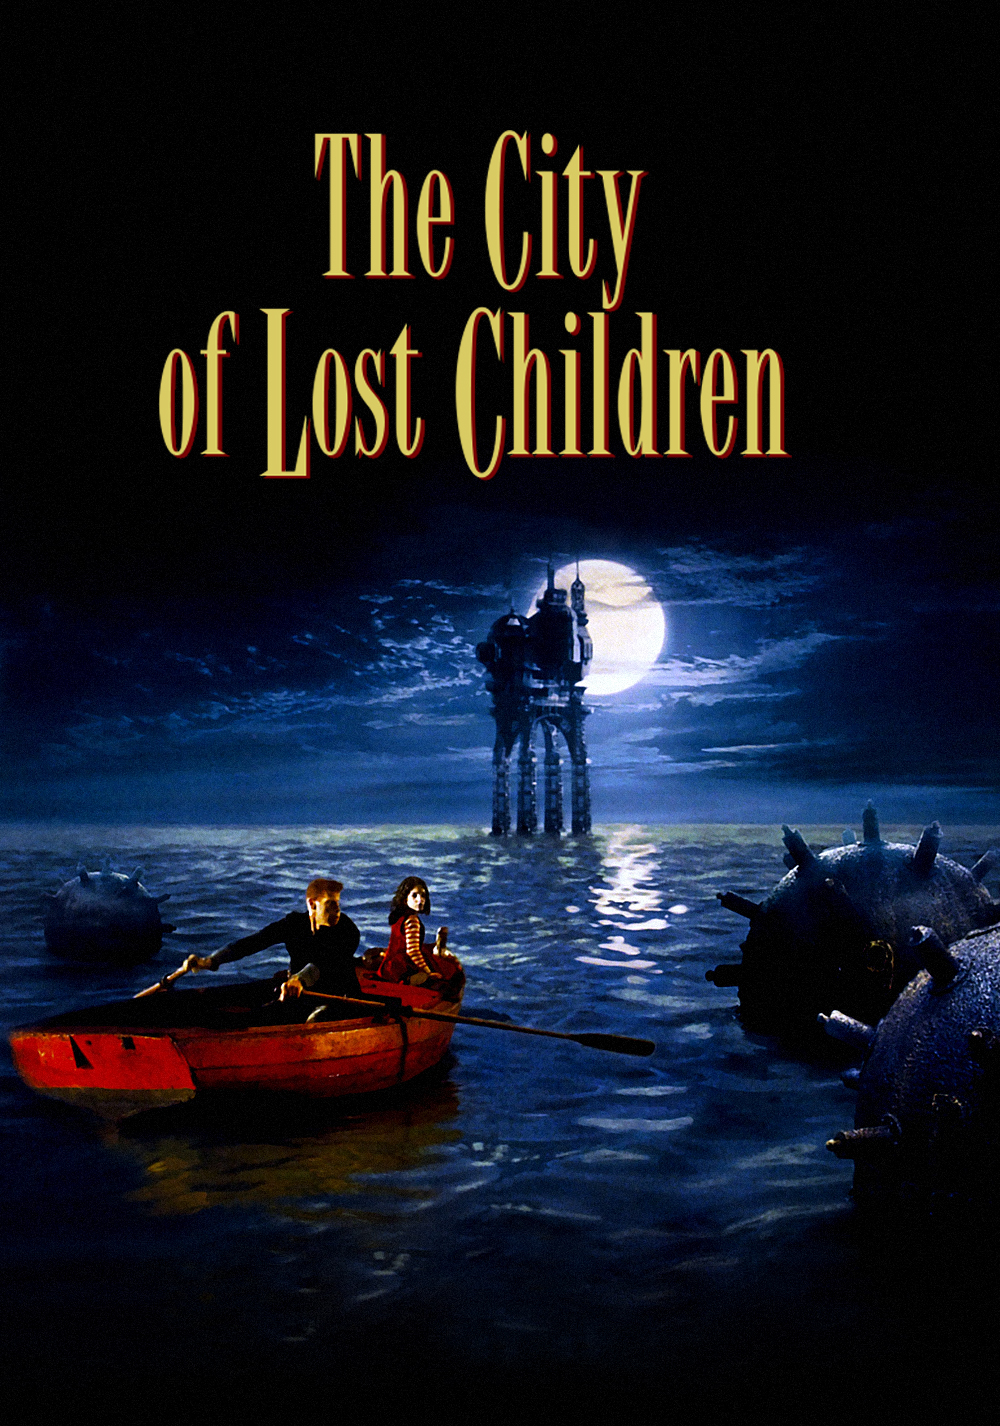 Poster for The City of Lost Children (Live score by Black Lodge)